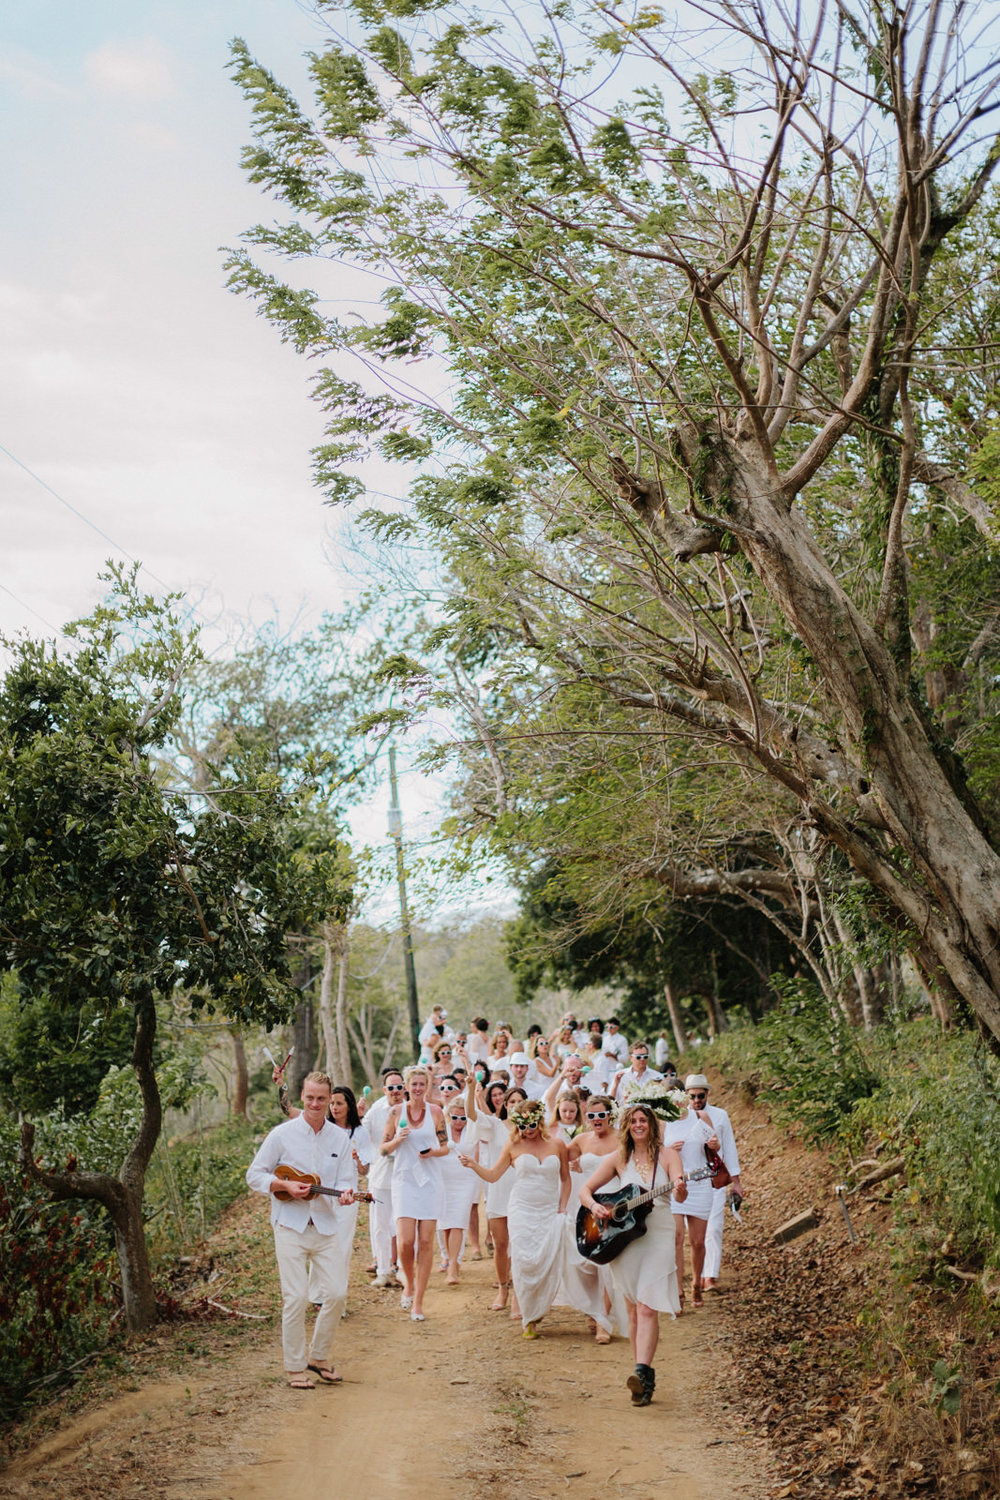 Wedding parade, San Juan del Sur